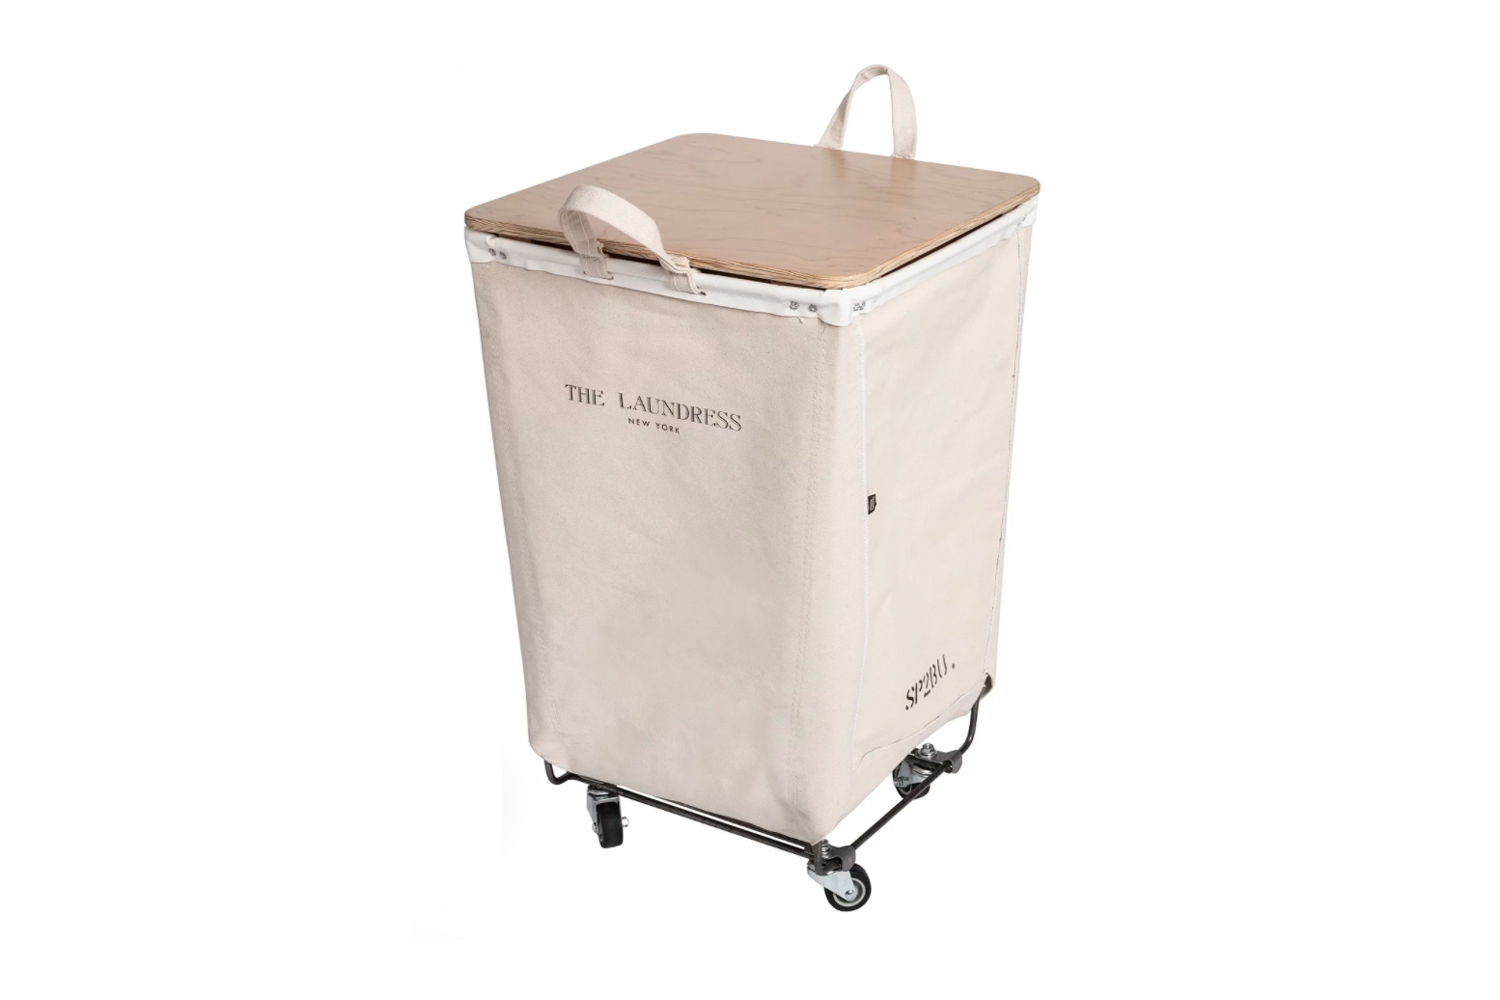 a riff off the steele classic, the laundress steele canvas single hamper with f 12